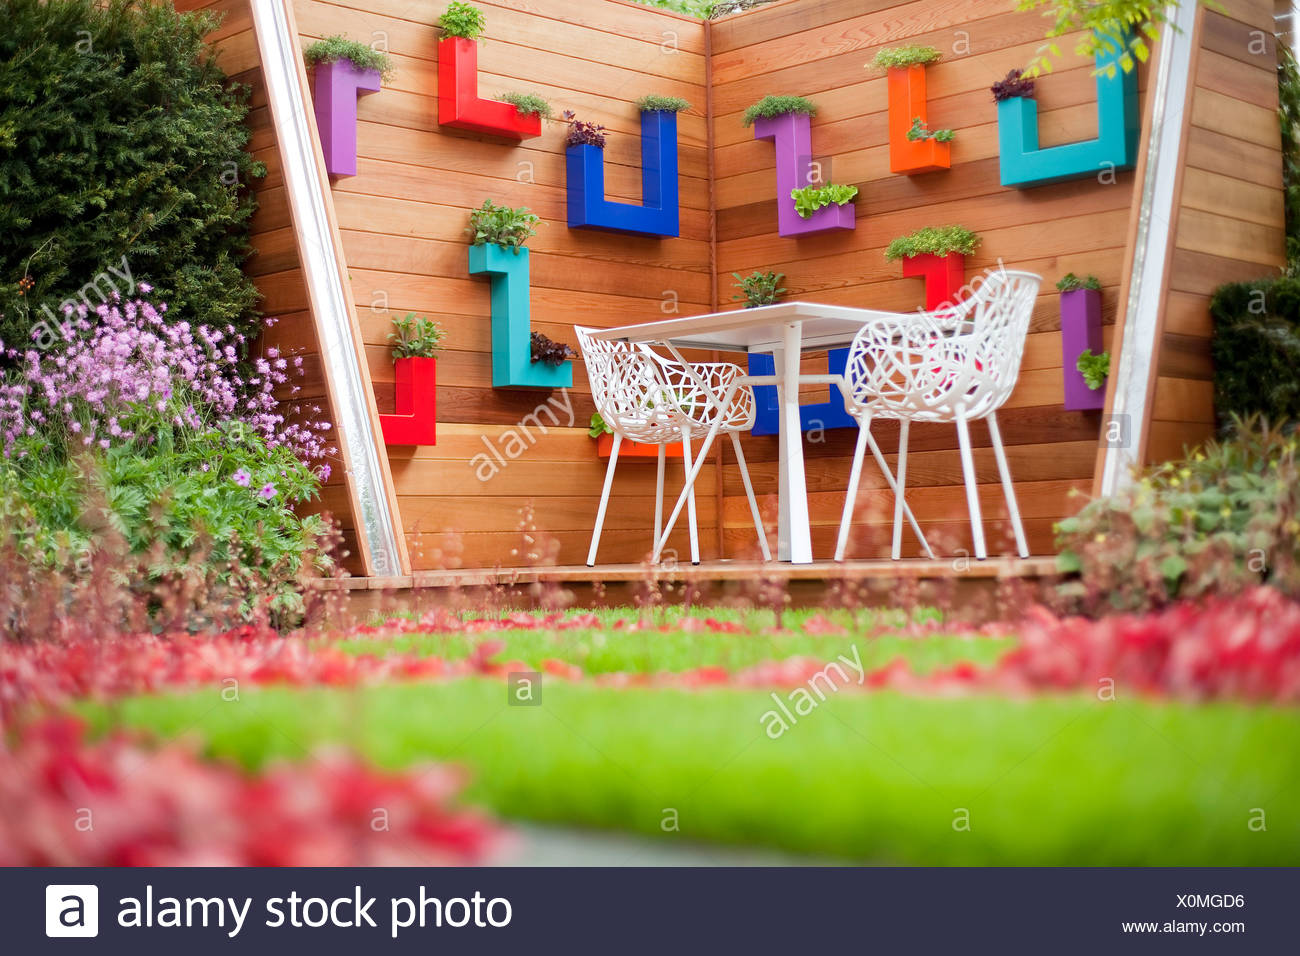 Chelsea Flower Show PSI Nursery Garden, Designer Jamie Dunstan at the Royal Horticultural Society Chelsea Flower Show in London Stock Photo